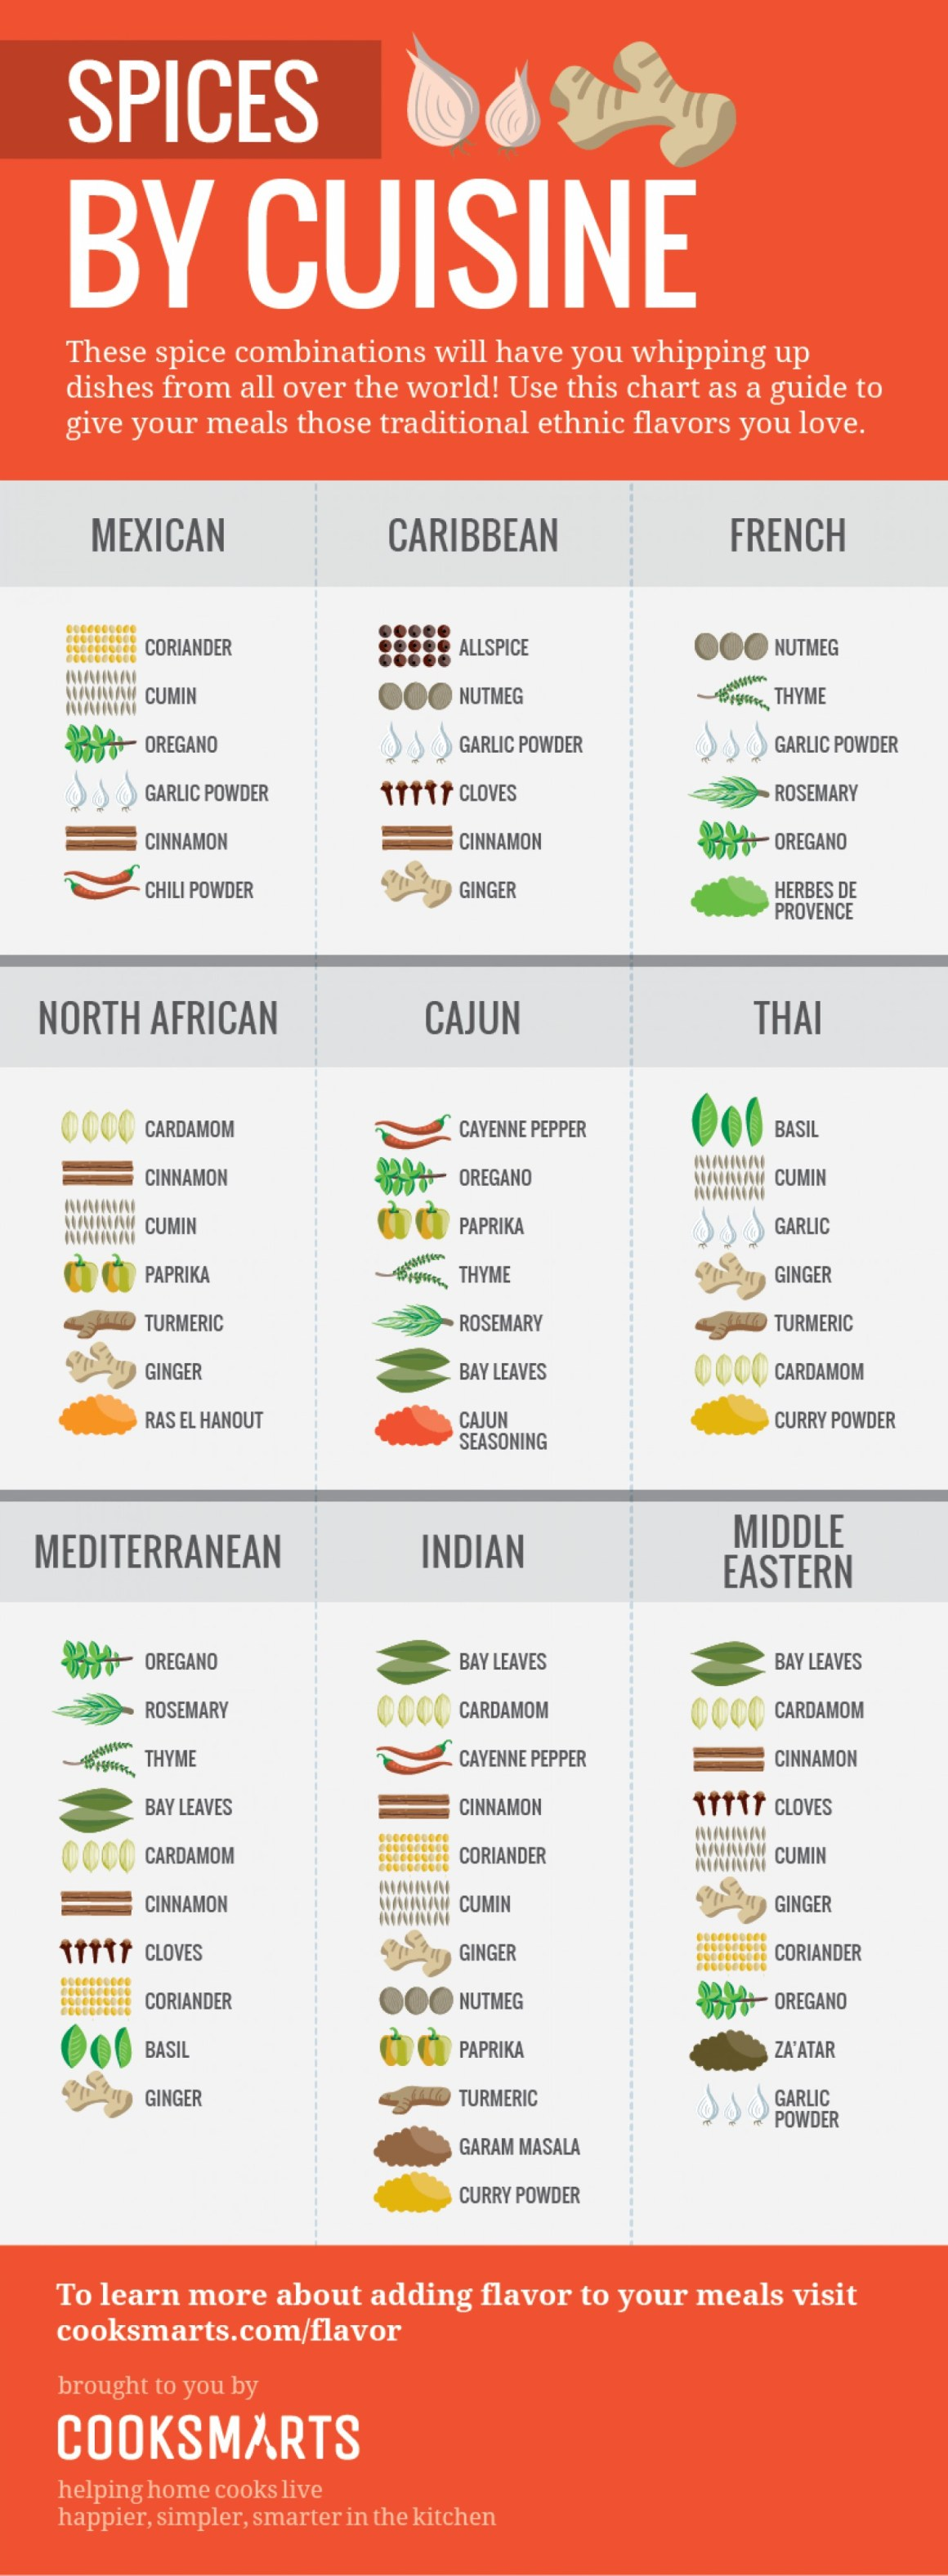 spices-by-cuisine-vertical_543410ad945b5_w1500